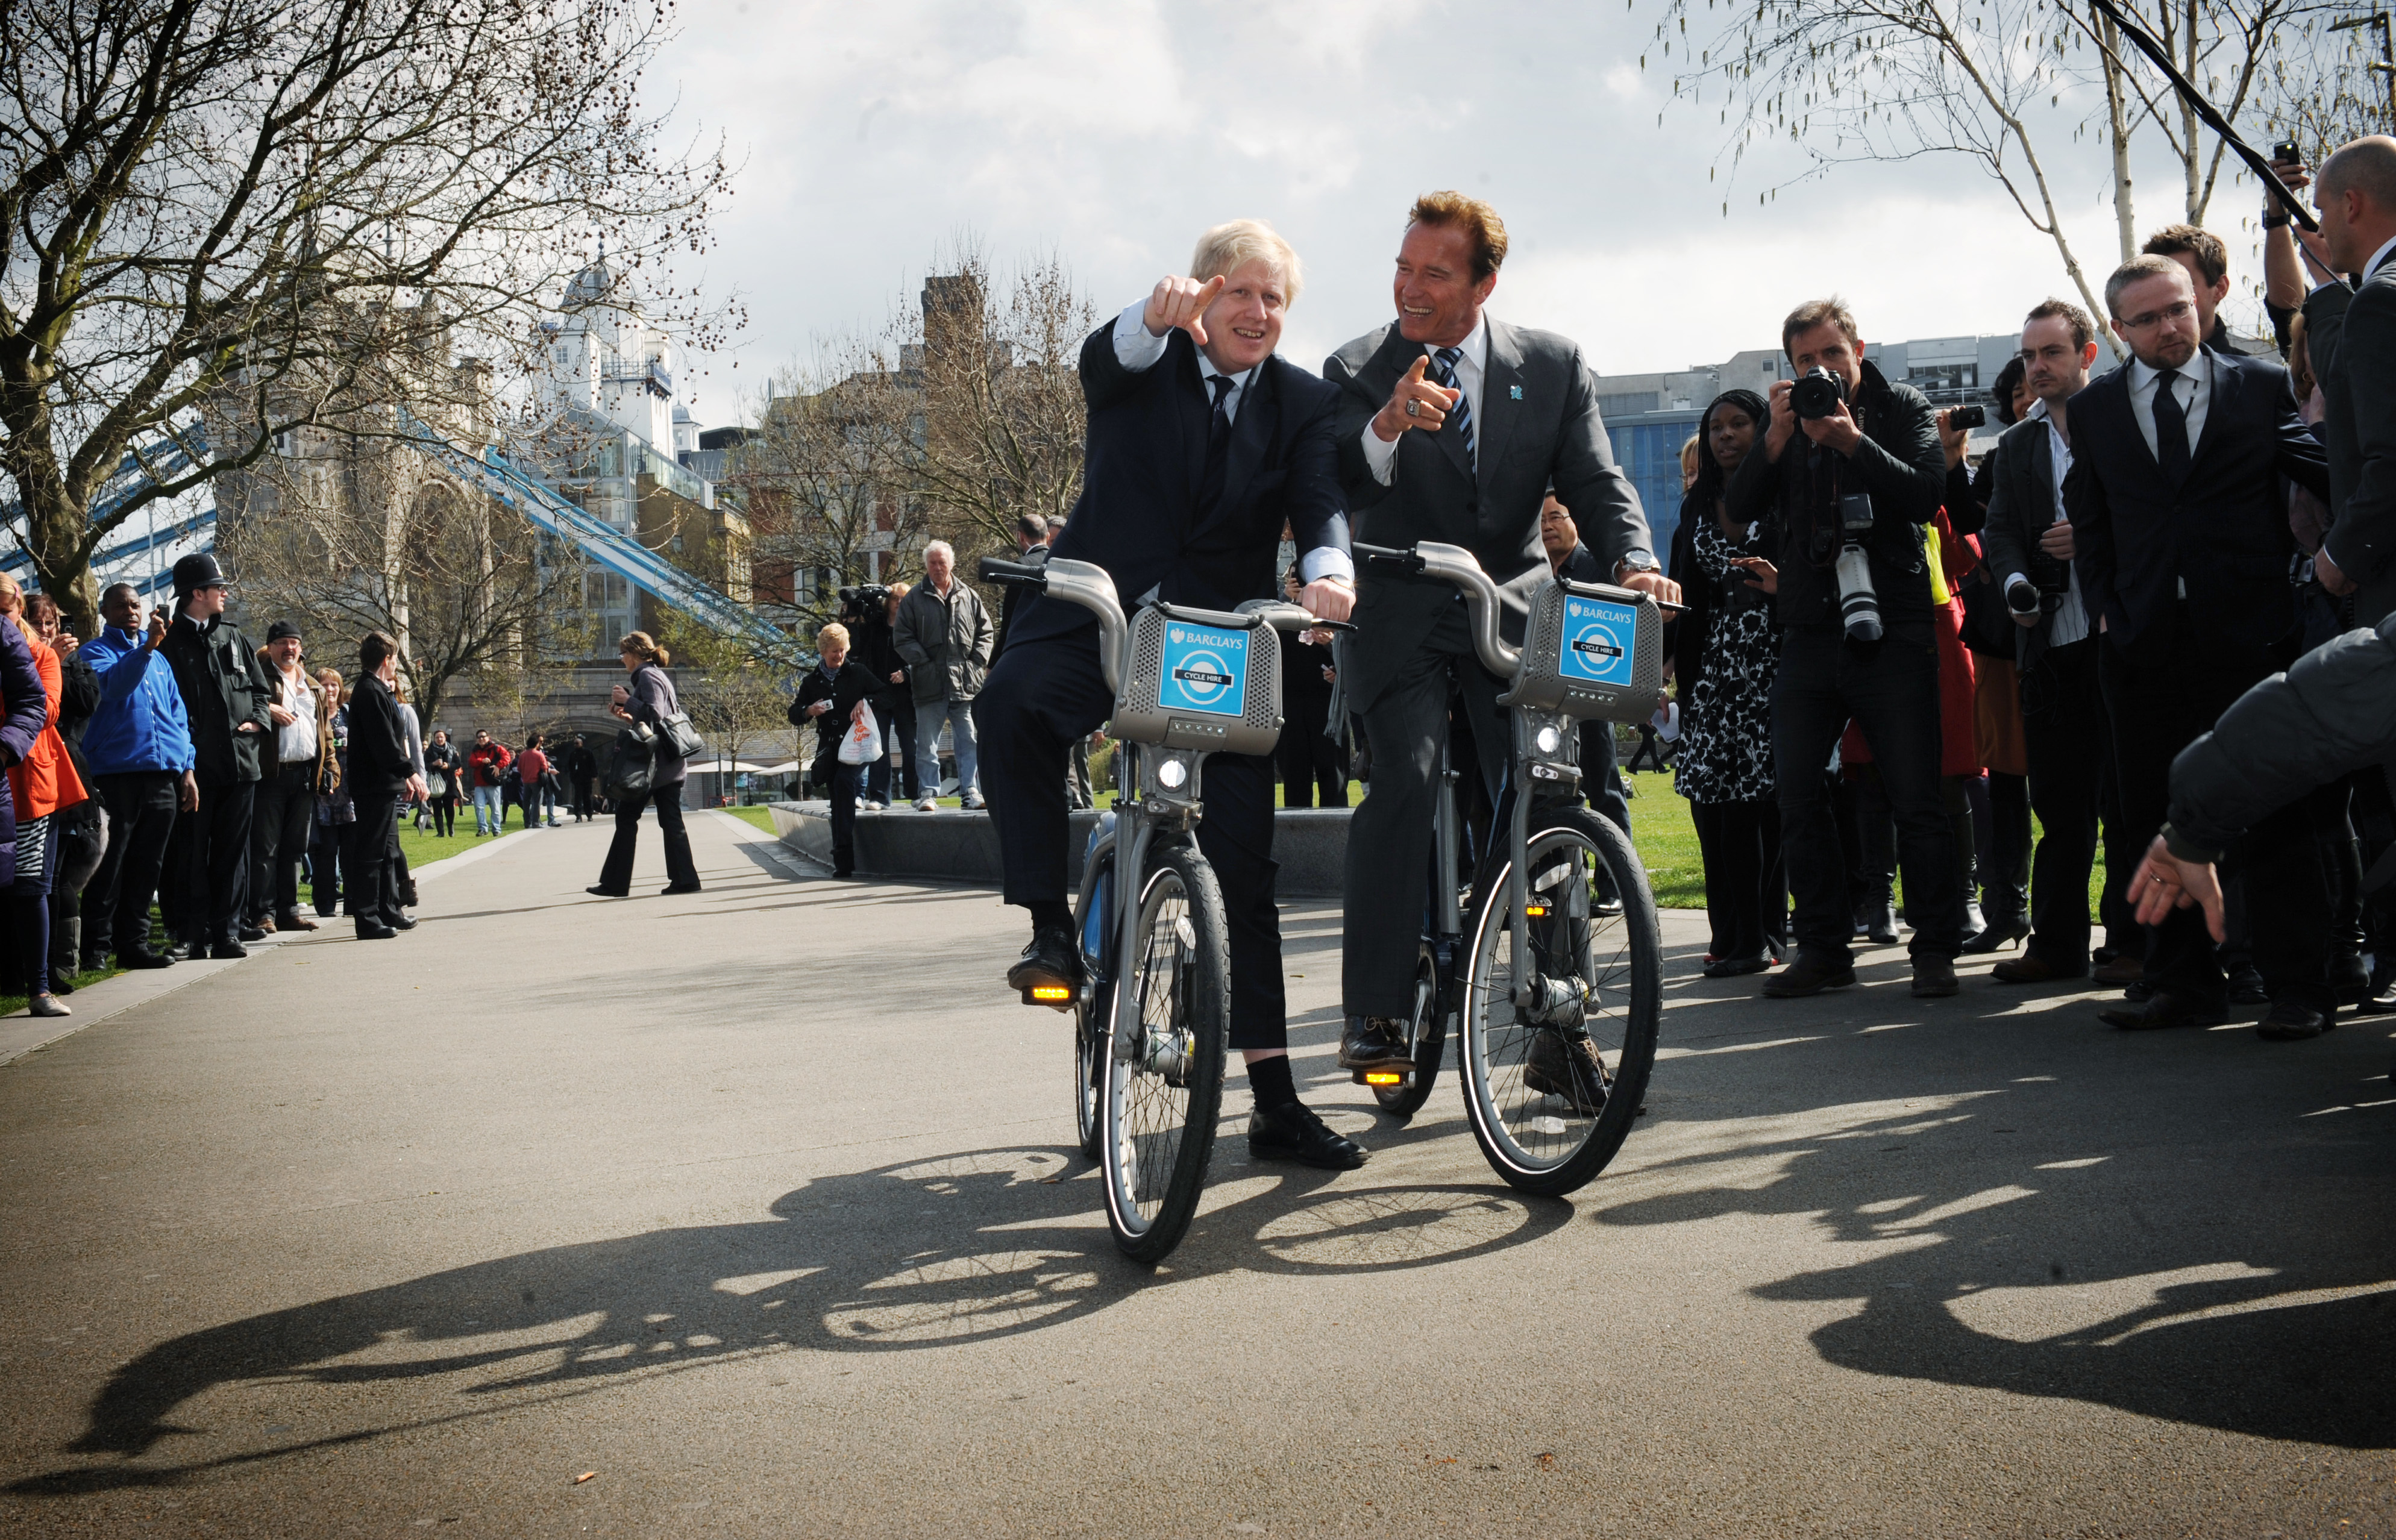 London Mayor Boris Johnson takes former Governor of California Arnold Schwarzenegger (right) for a ride on one of his 'Boris bikes' during his visit to City Hall in London. PRESS ASSOCIATION Photo. Picture date: Thursday March 31, 2011. Photo credit should read: Stefan Rousseau/PA Wire